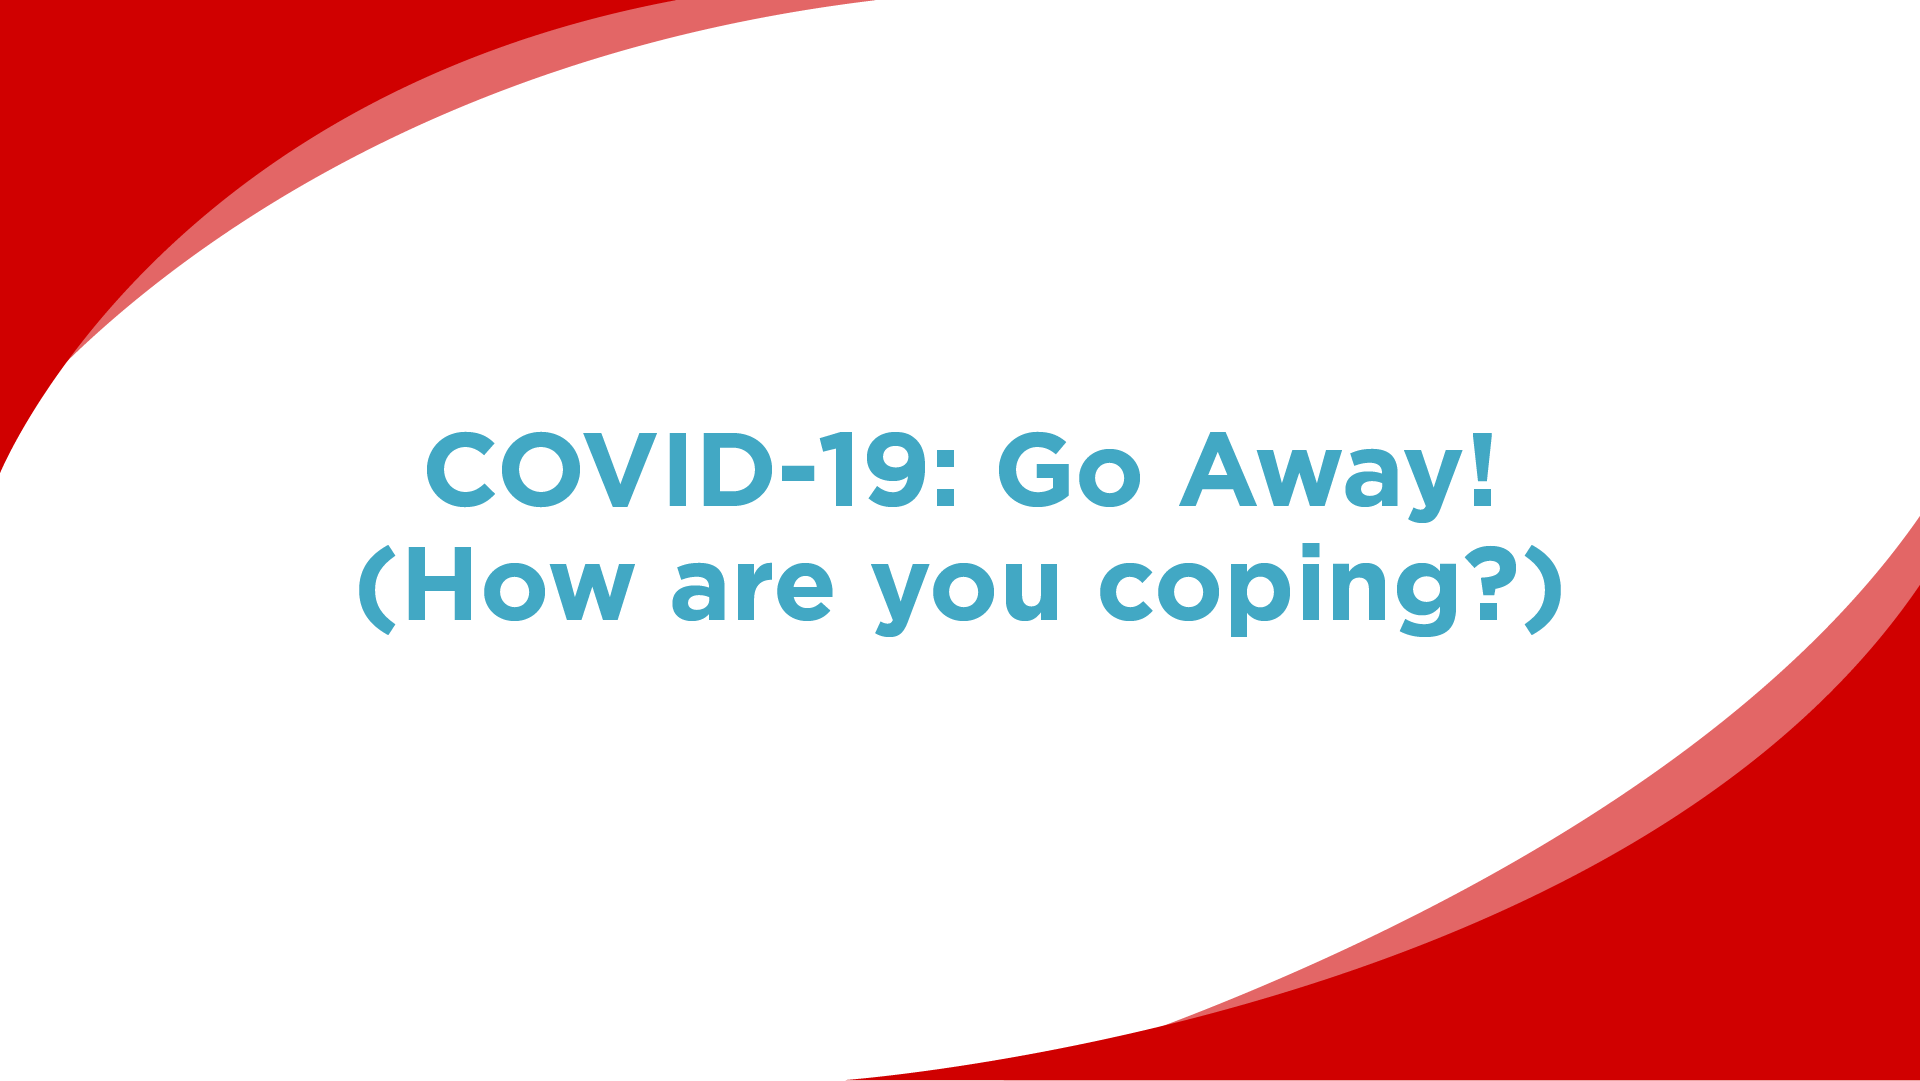 COVID-19: Go Away! (How are you coping?)